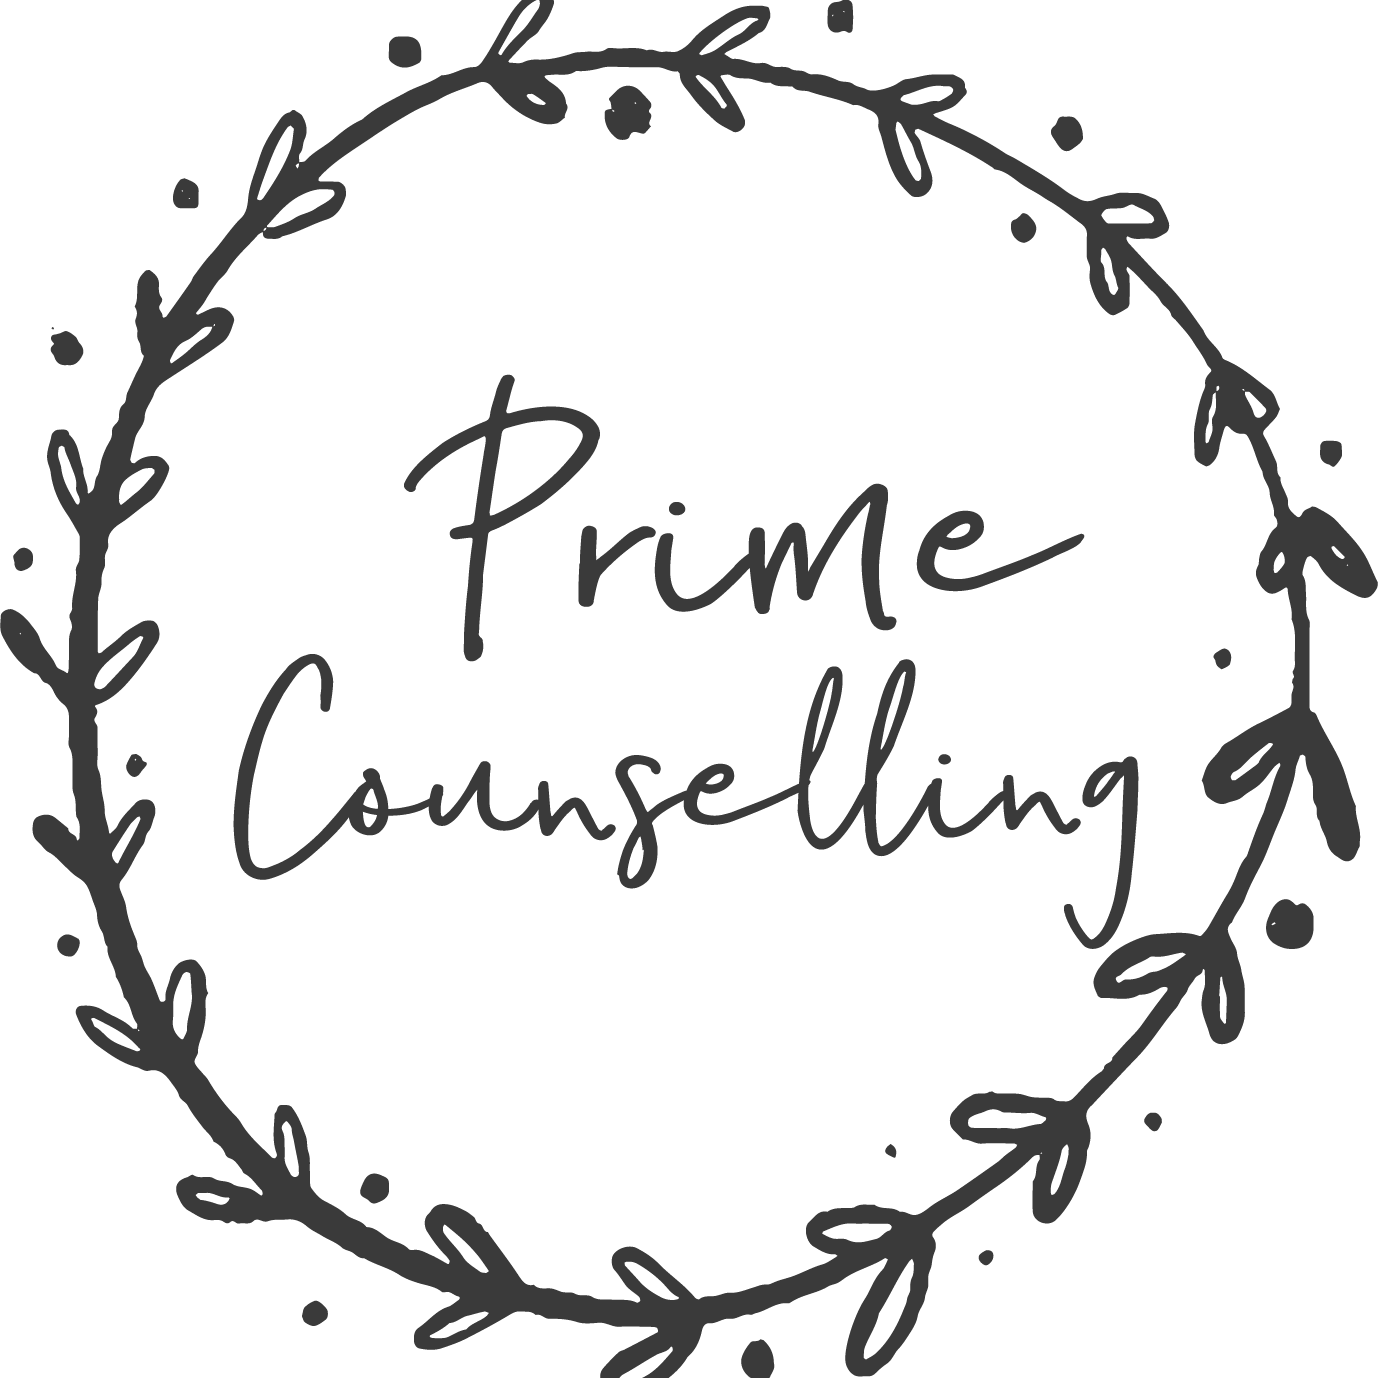 Prime Counselling